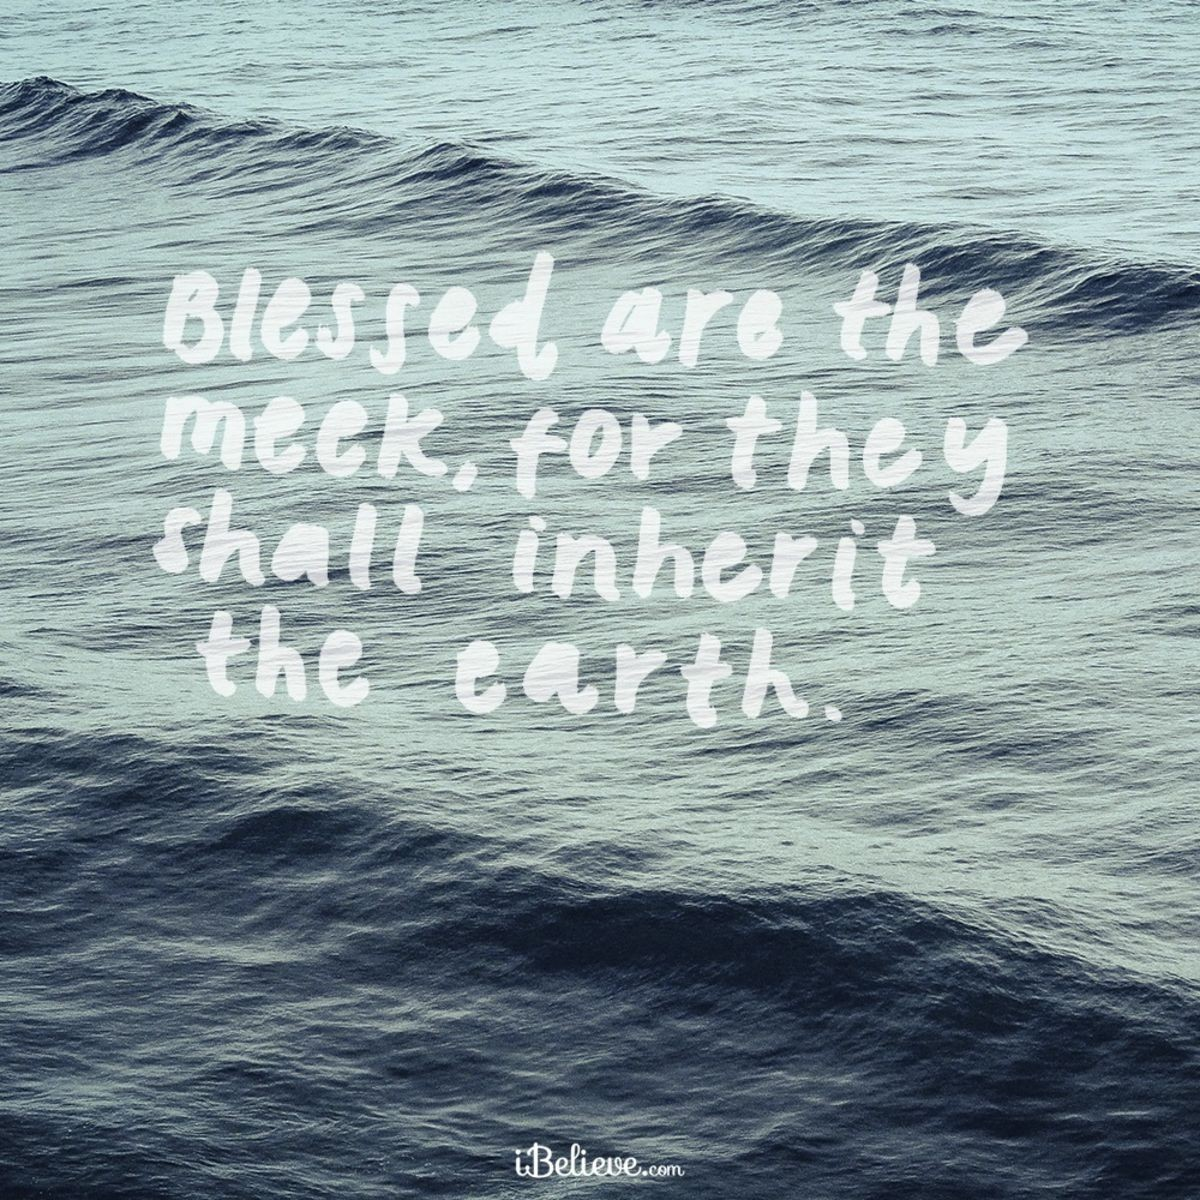 Your Daily Verse - Matthew 5:5